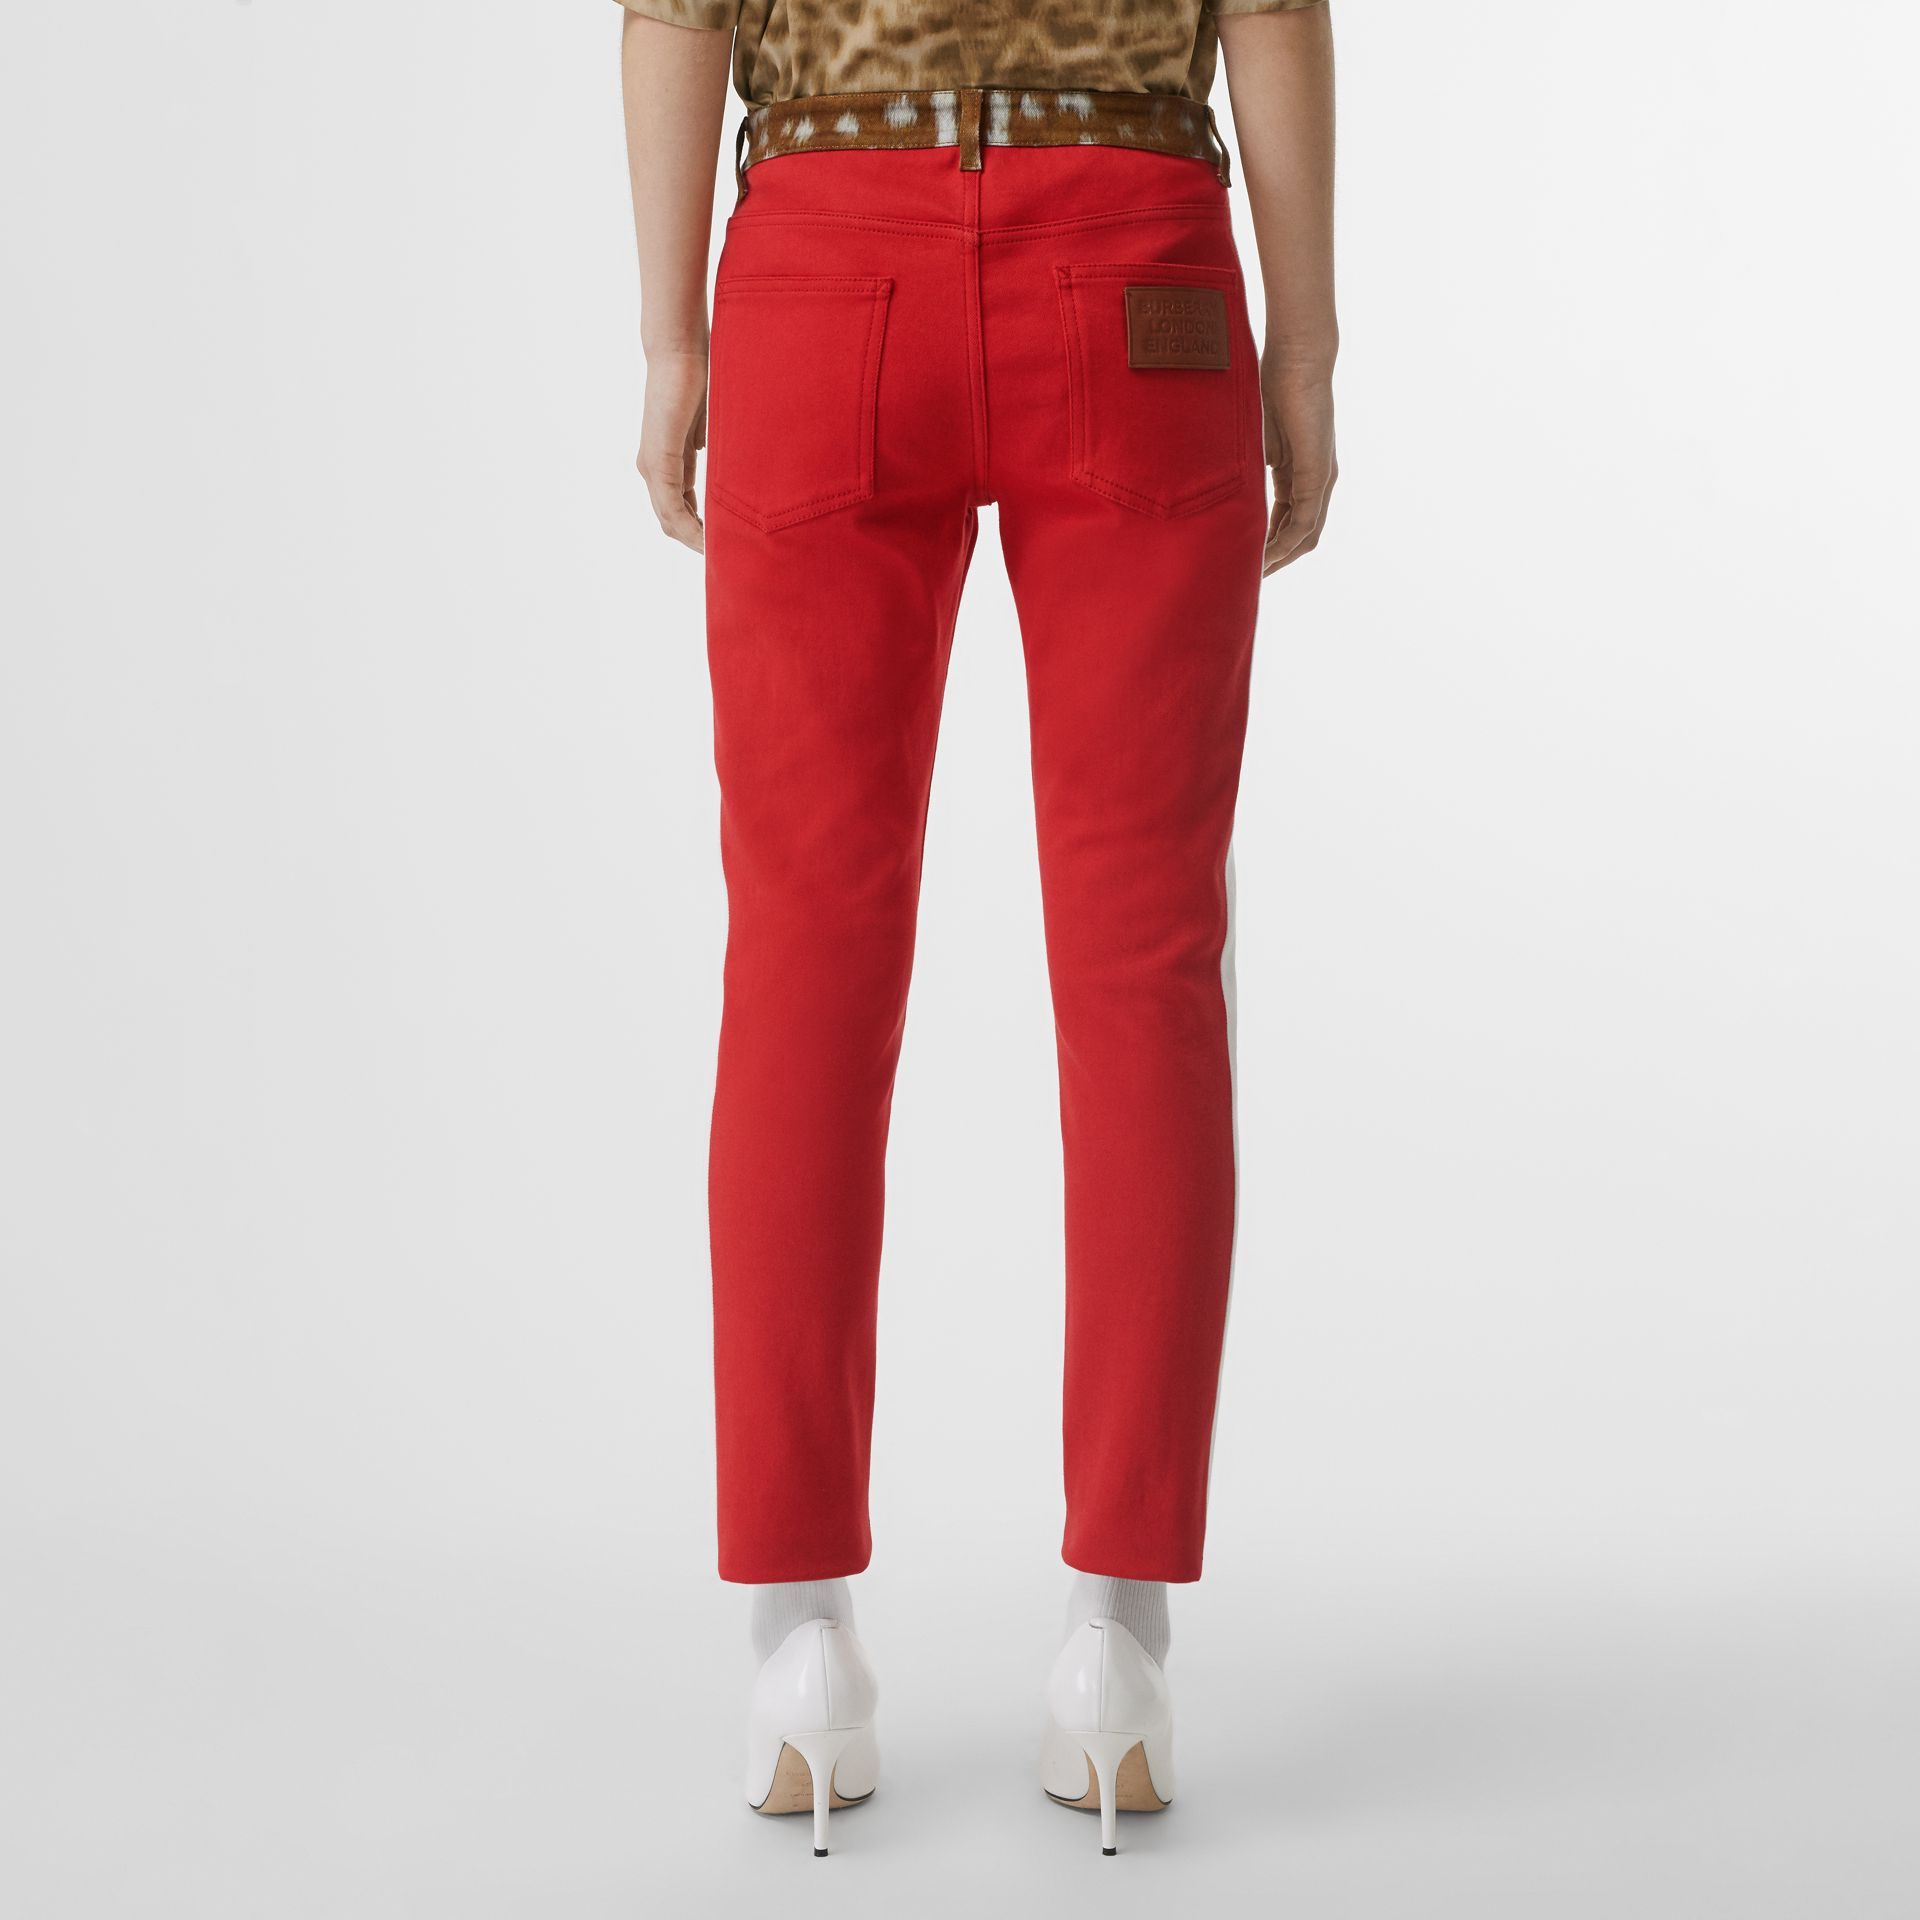 Straight Fit Deer Print Trim Japanese Denim Jeans in Bright Red - Women | Burberry Canada - gallery image 2